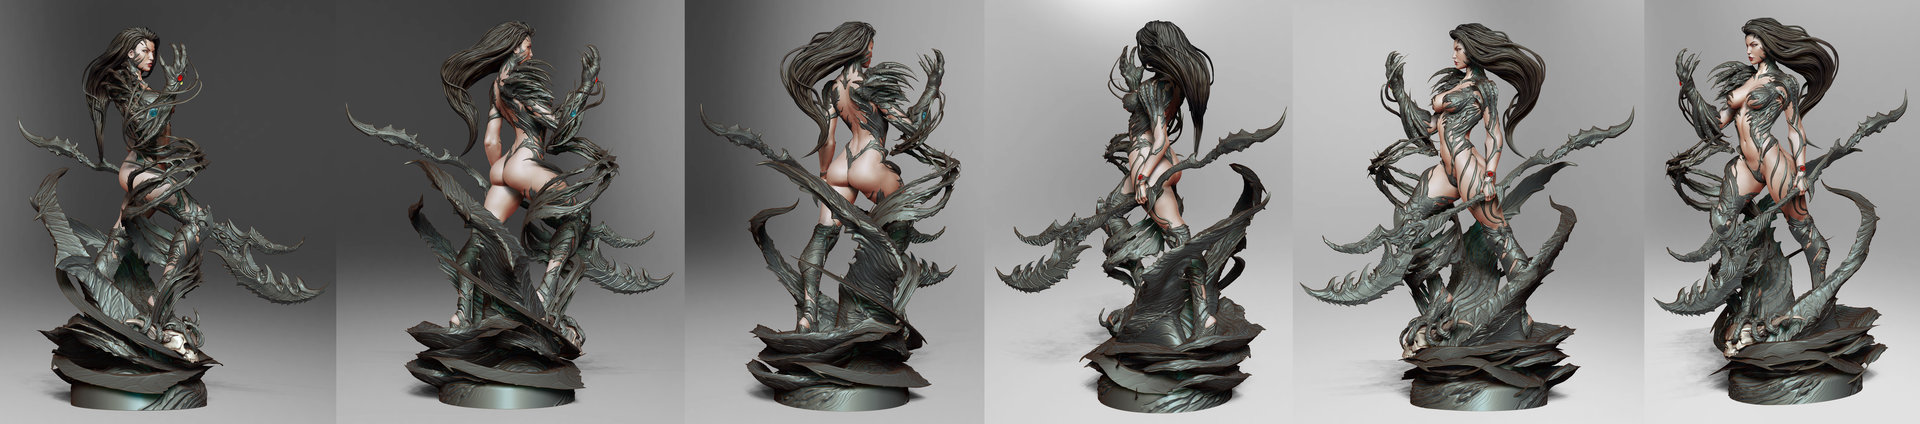 David giraud witchblade